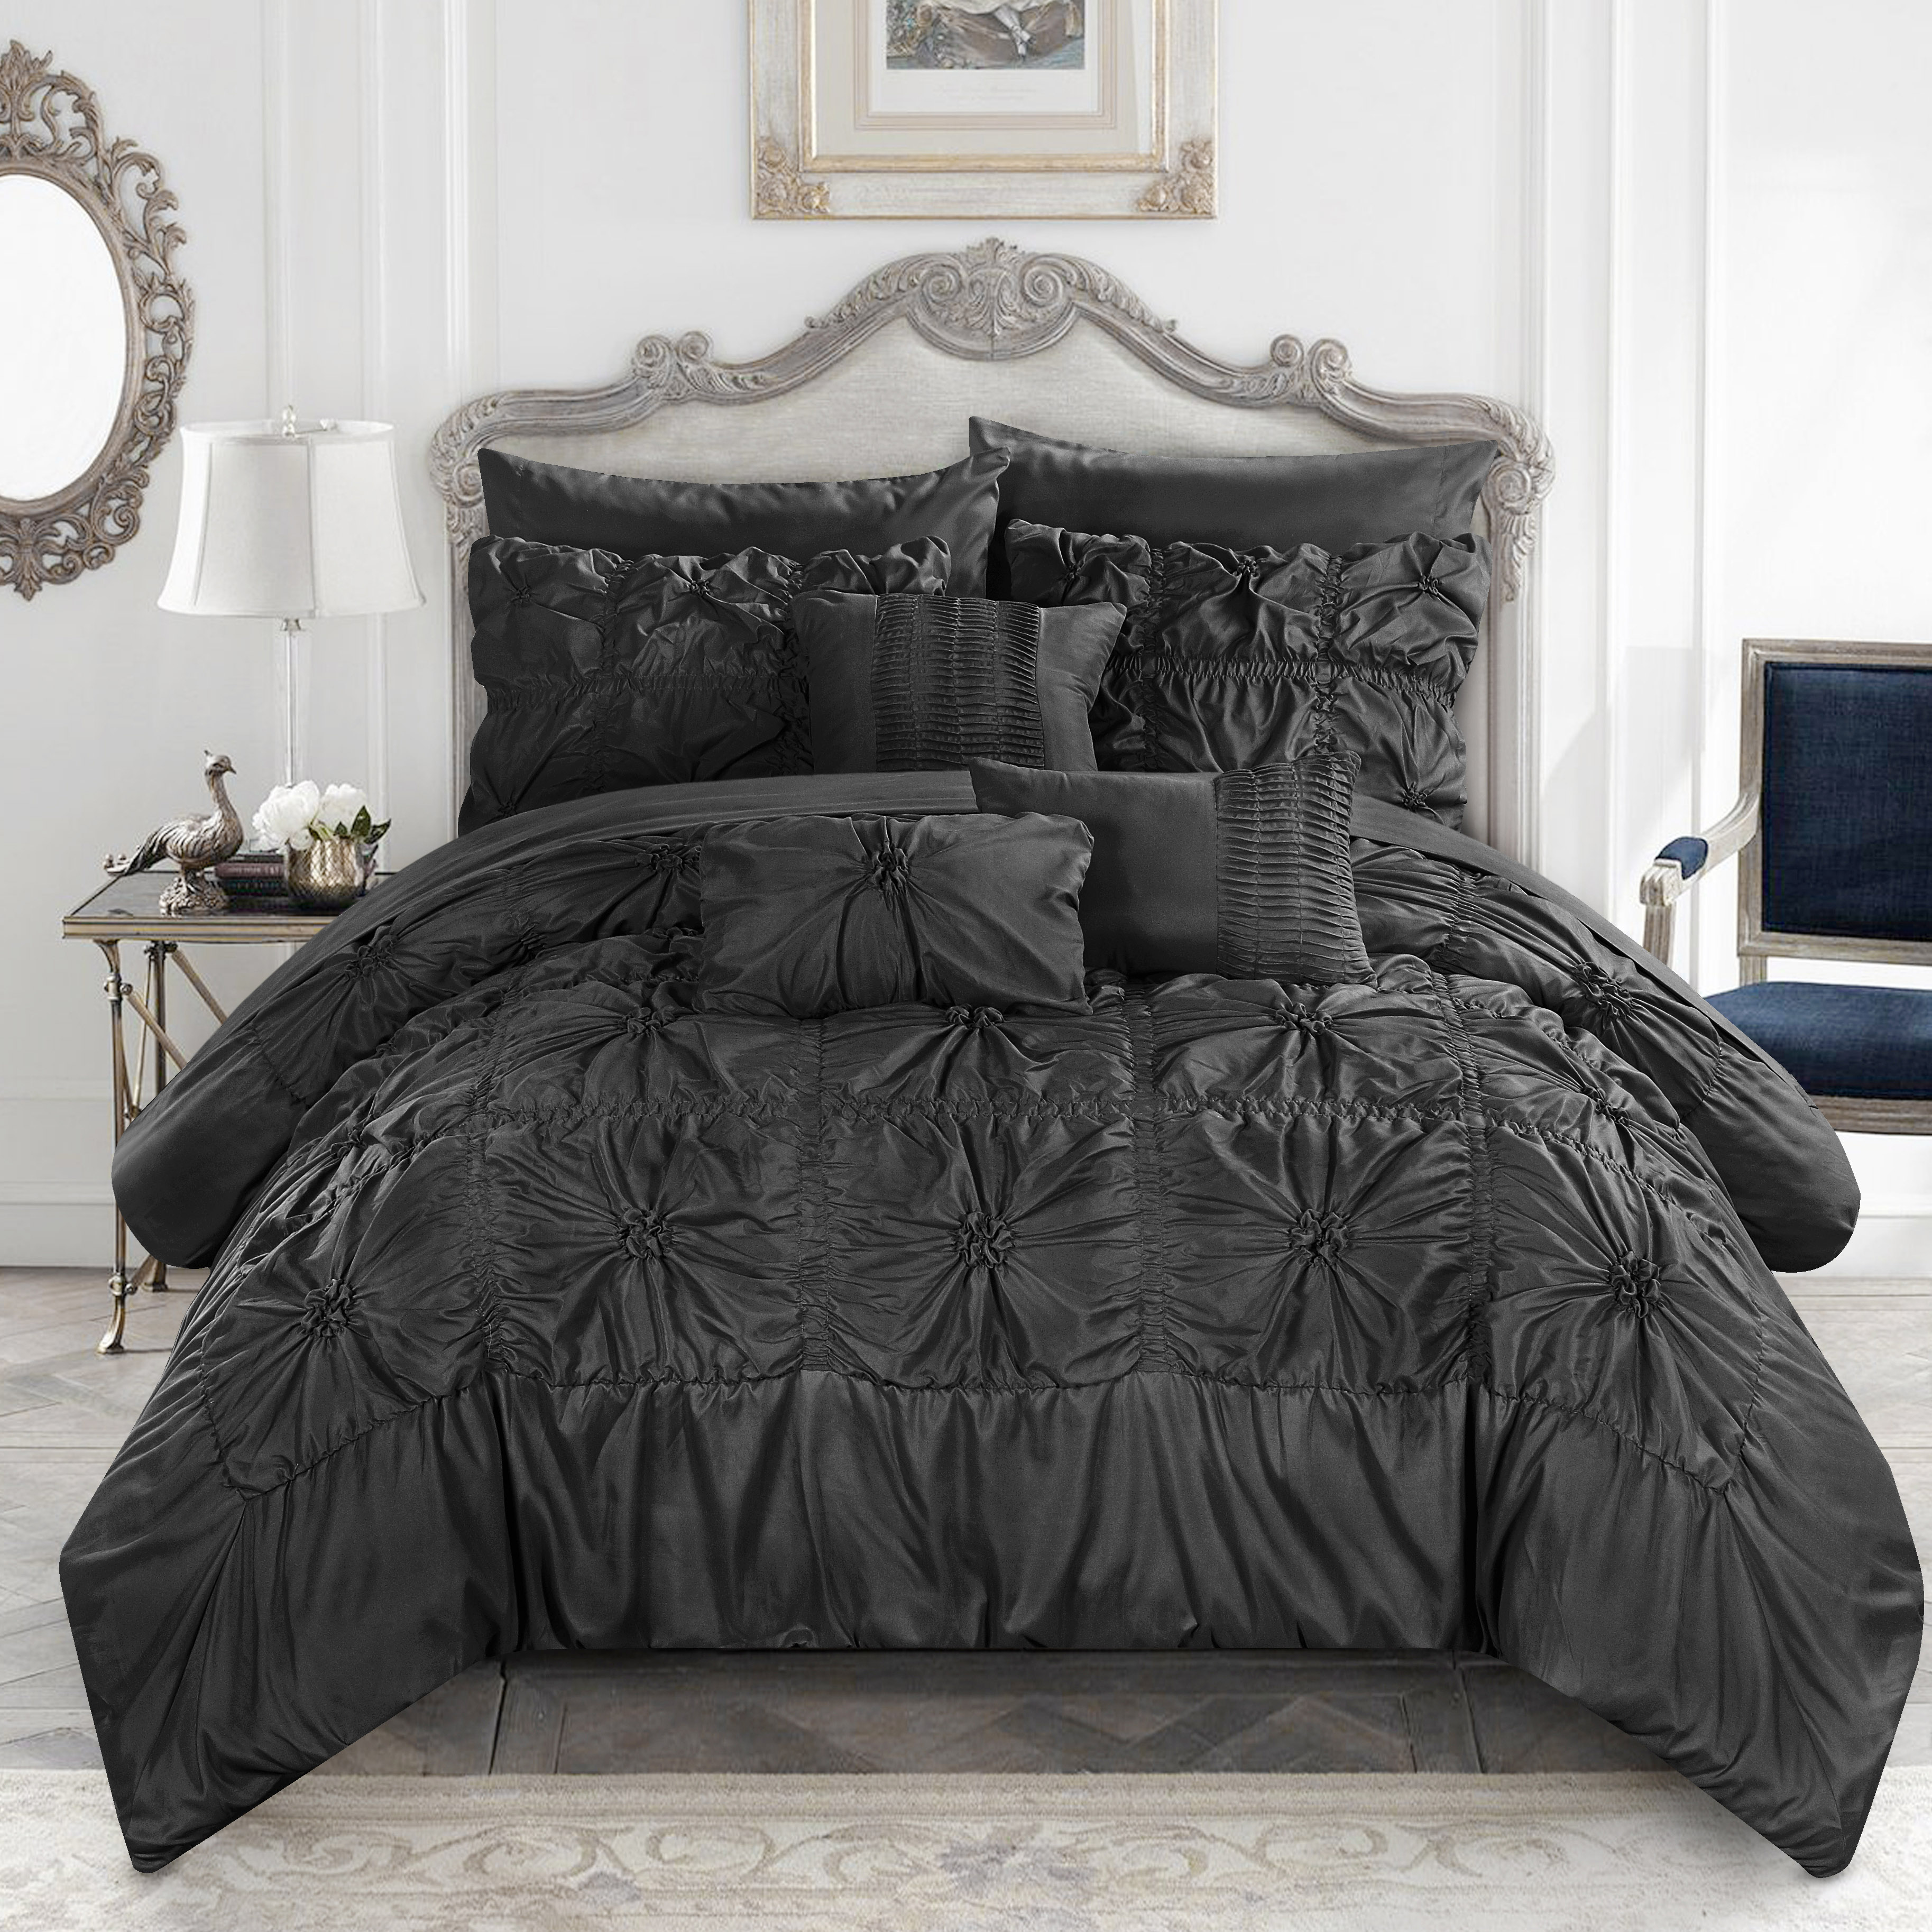 Chic Home 8-Piece Grantfield Floral Pinch Pleat Ruffled Designer Embellished Twin Bed In a Bag Comforter Set Black With sheet set